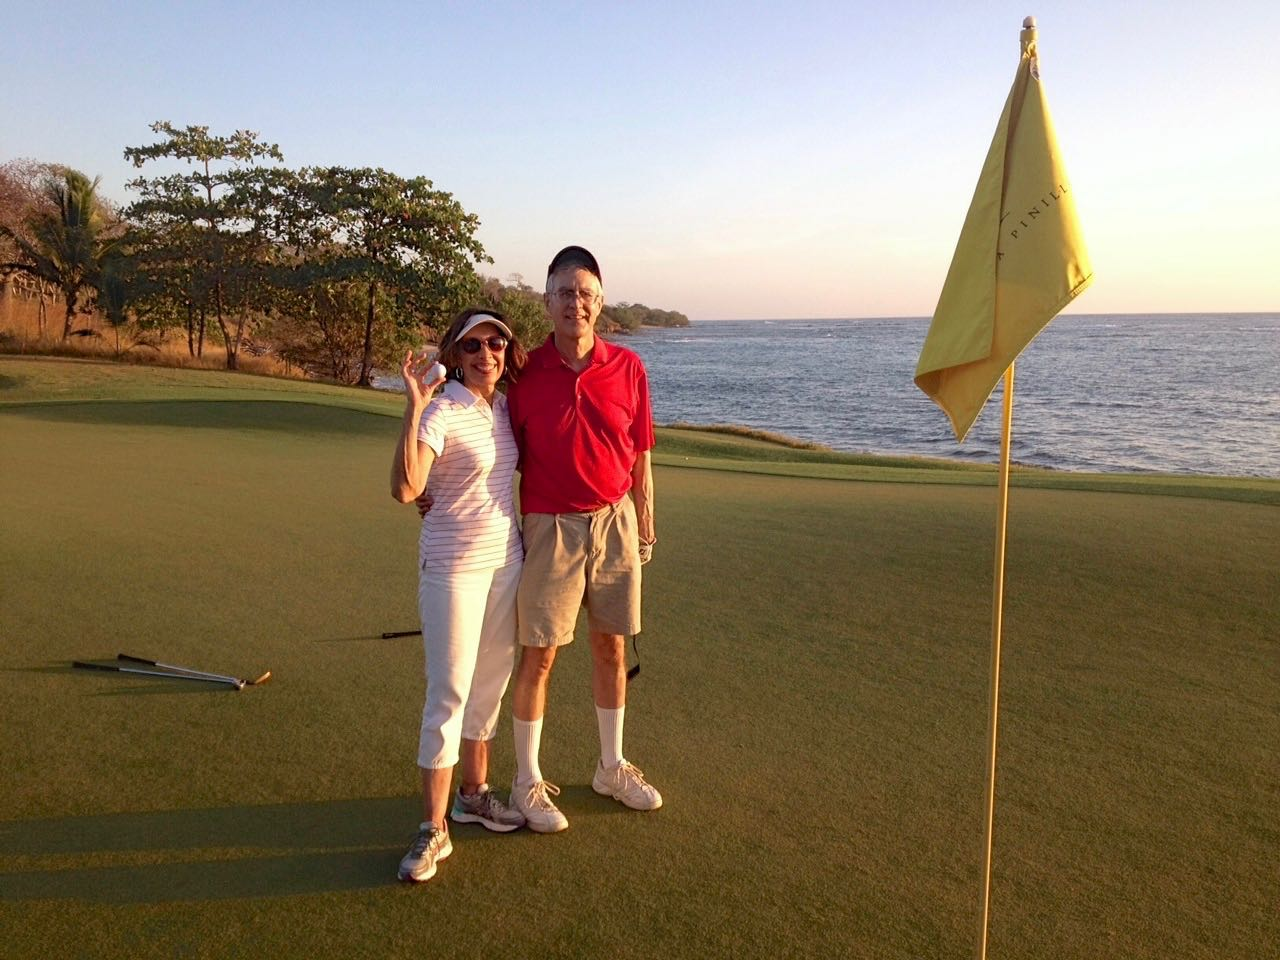 Costa Rica golf vacations for couples